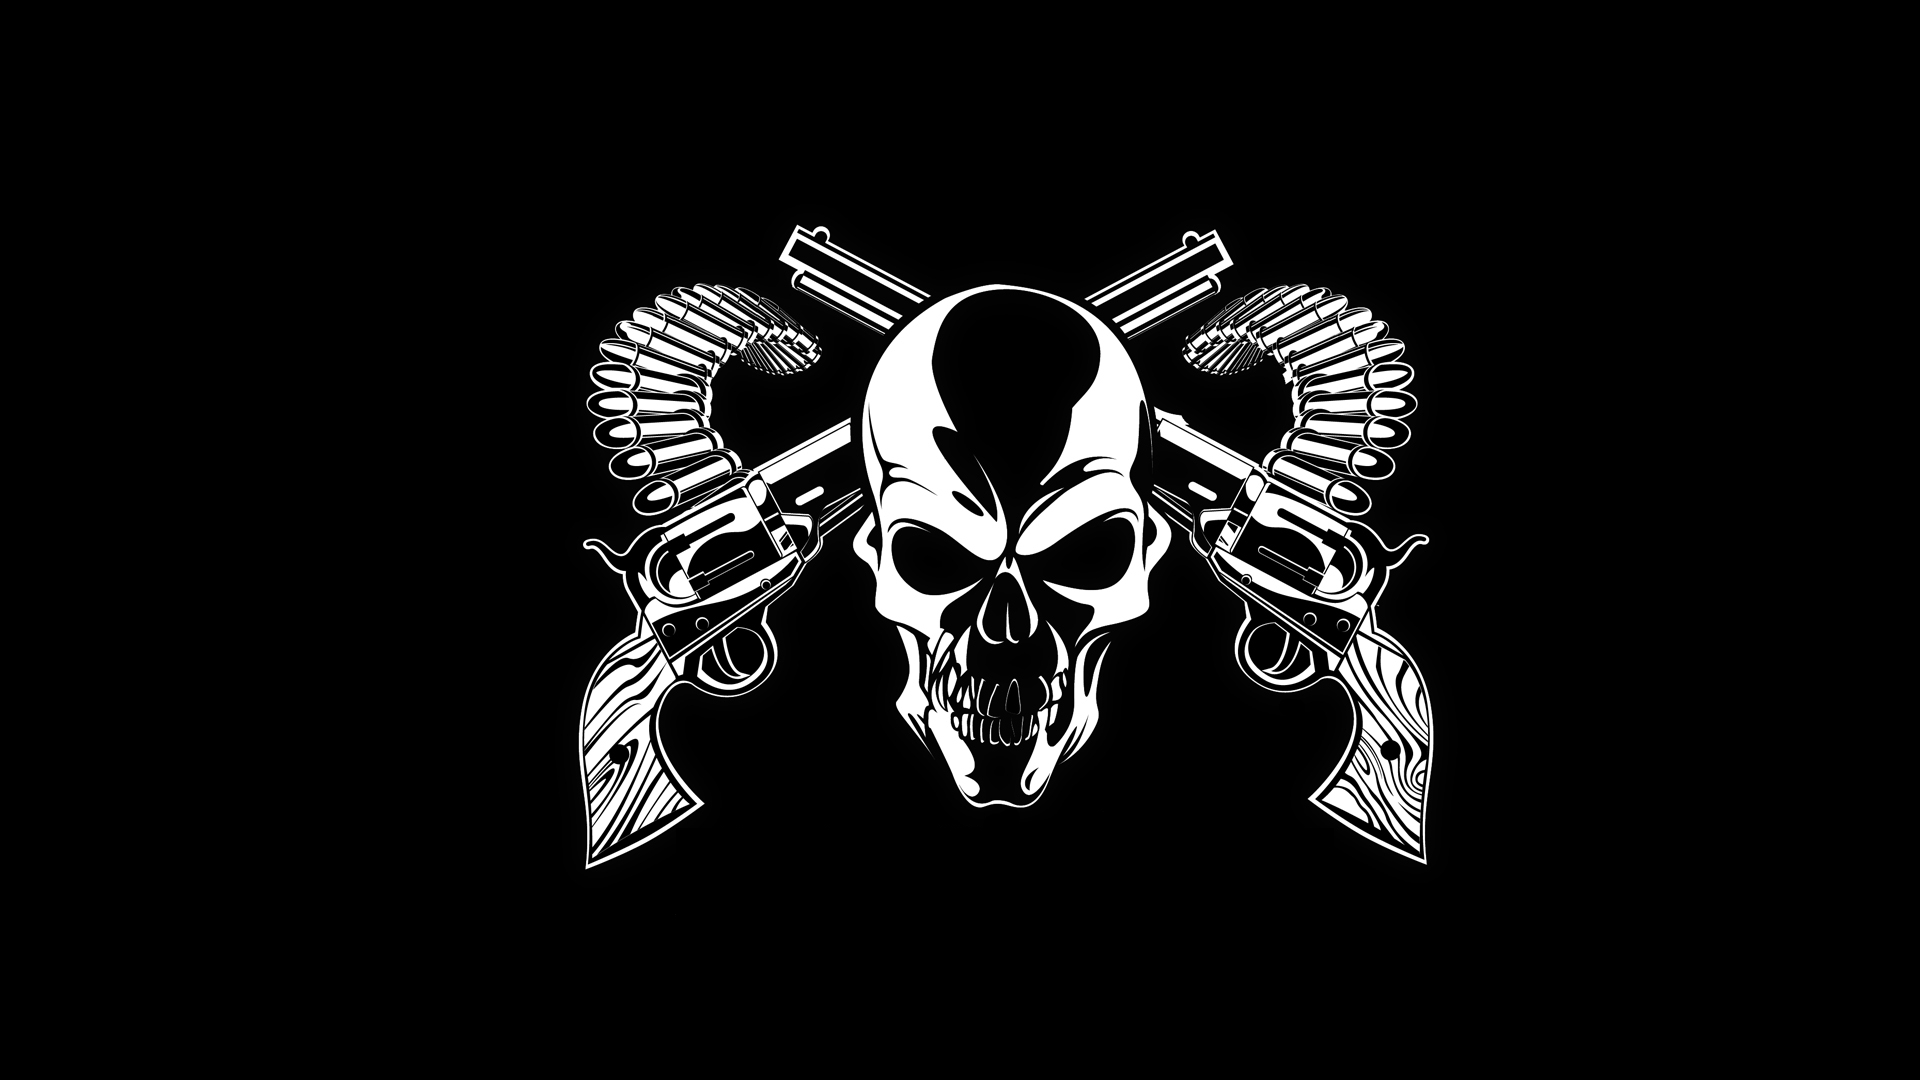 skull backgrounds wallpaper 1920x1080 57112